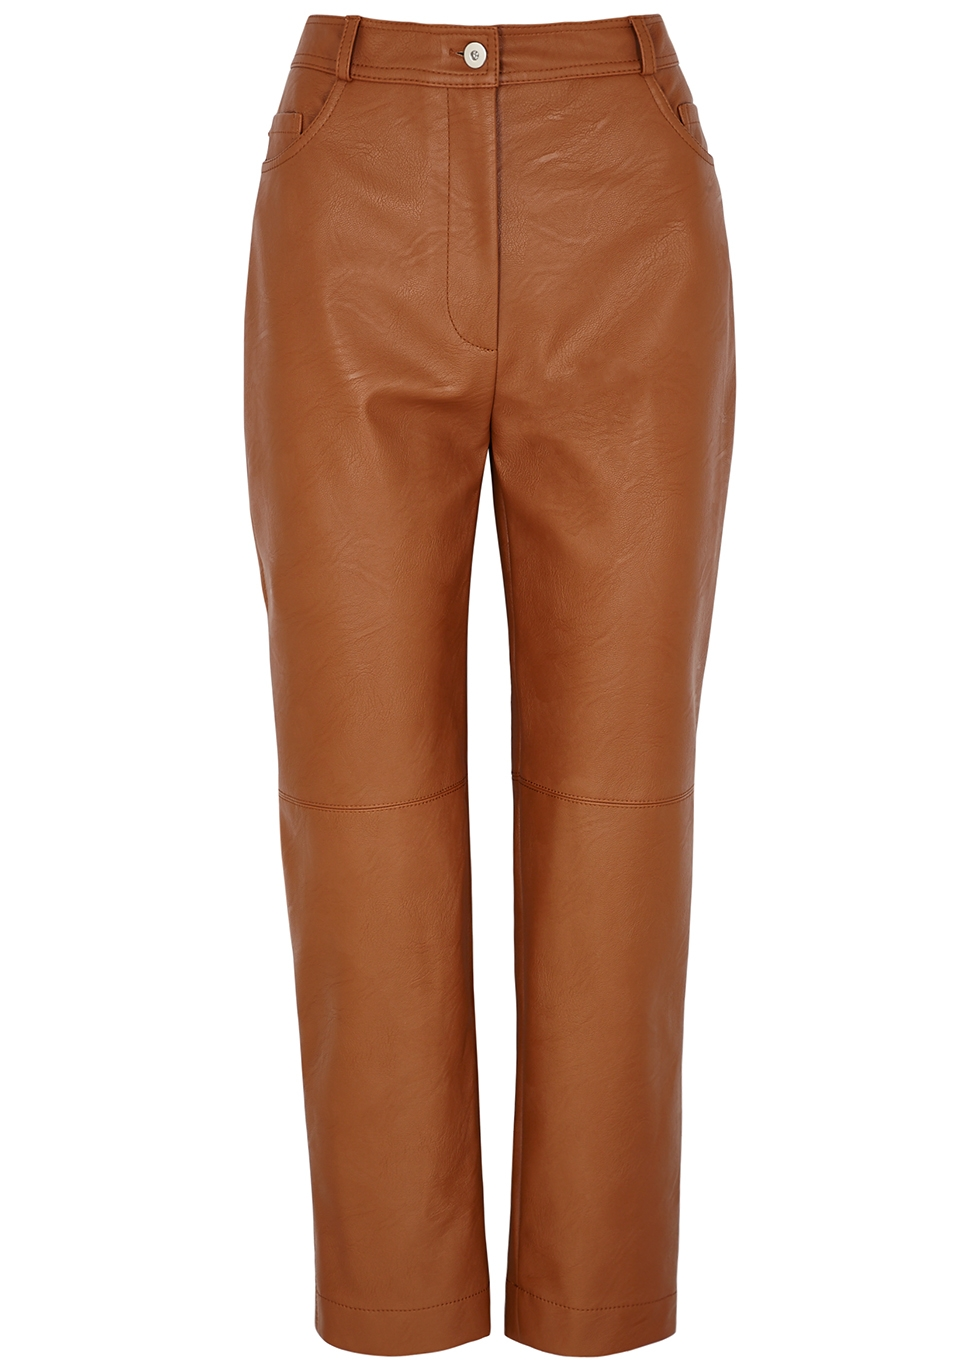 Hailey brown faux leather trousers